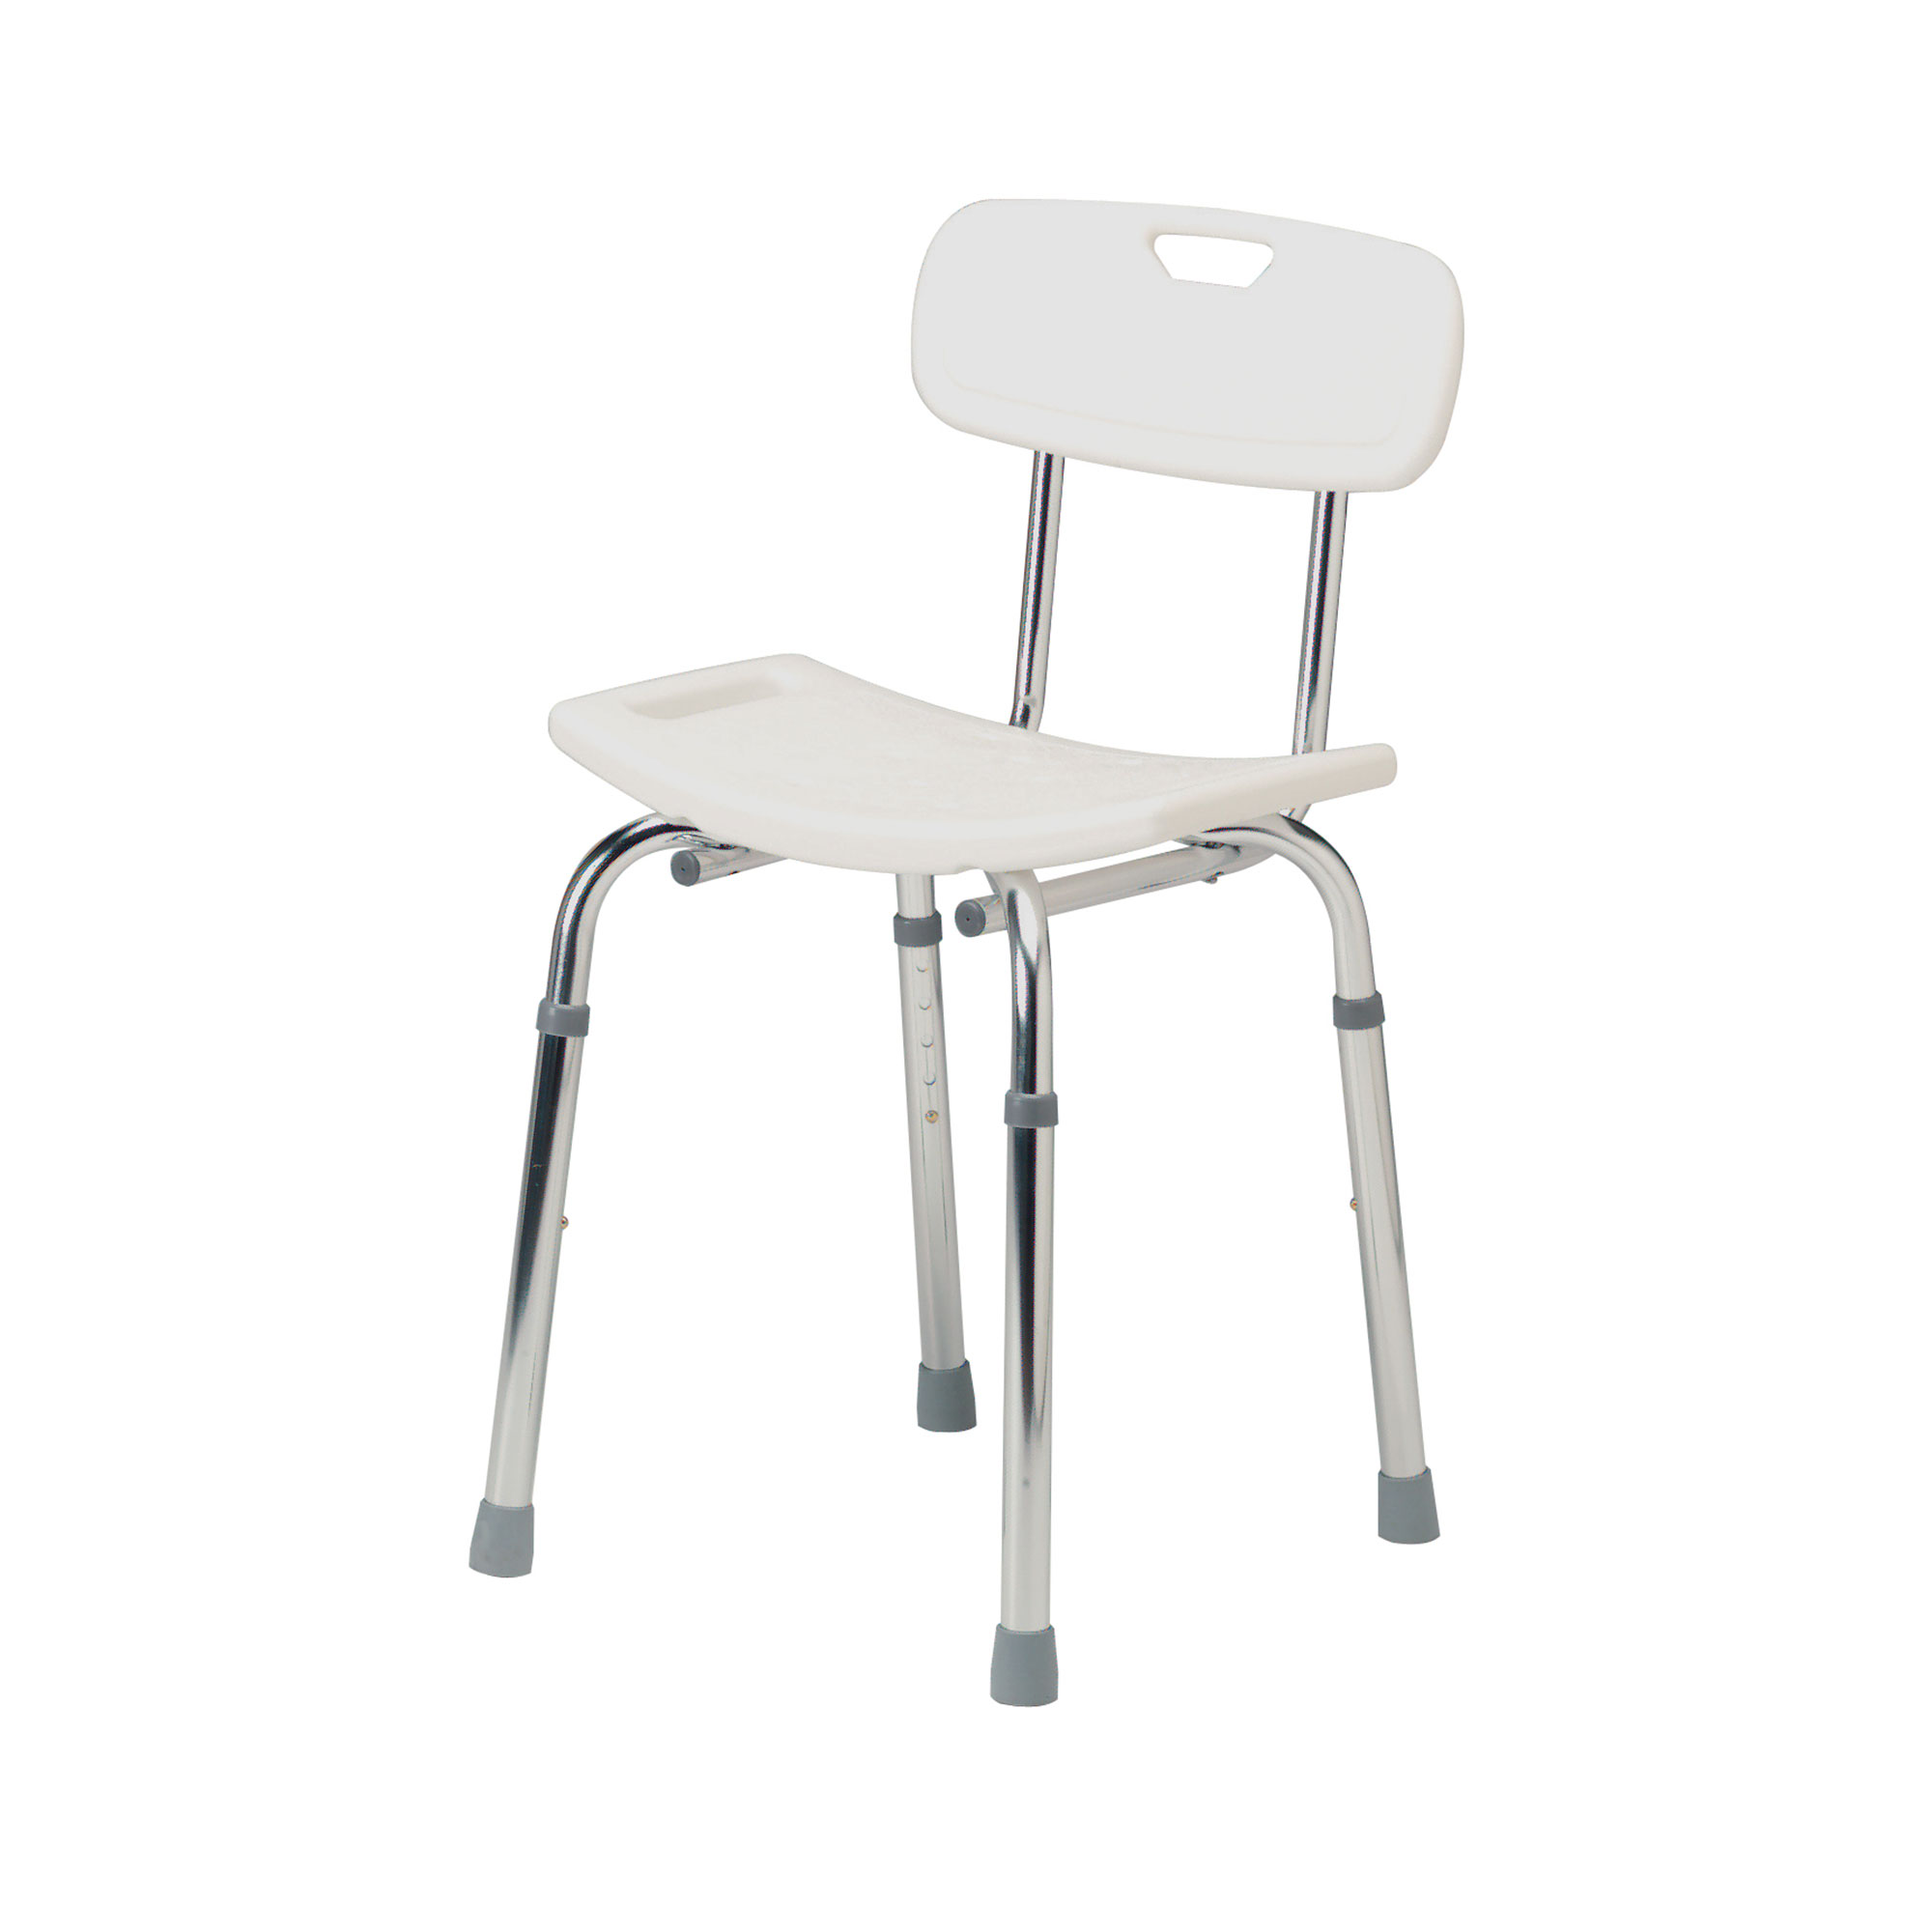 healthcare with chair product ultralife backrest shower